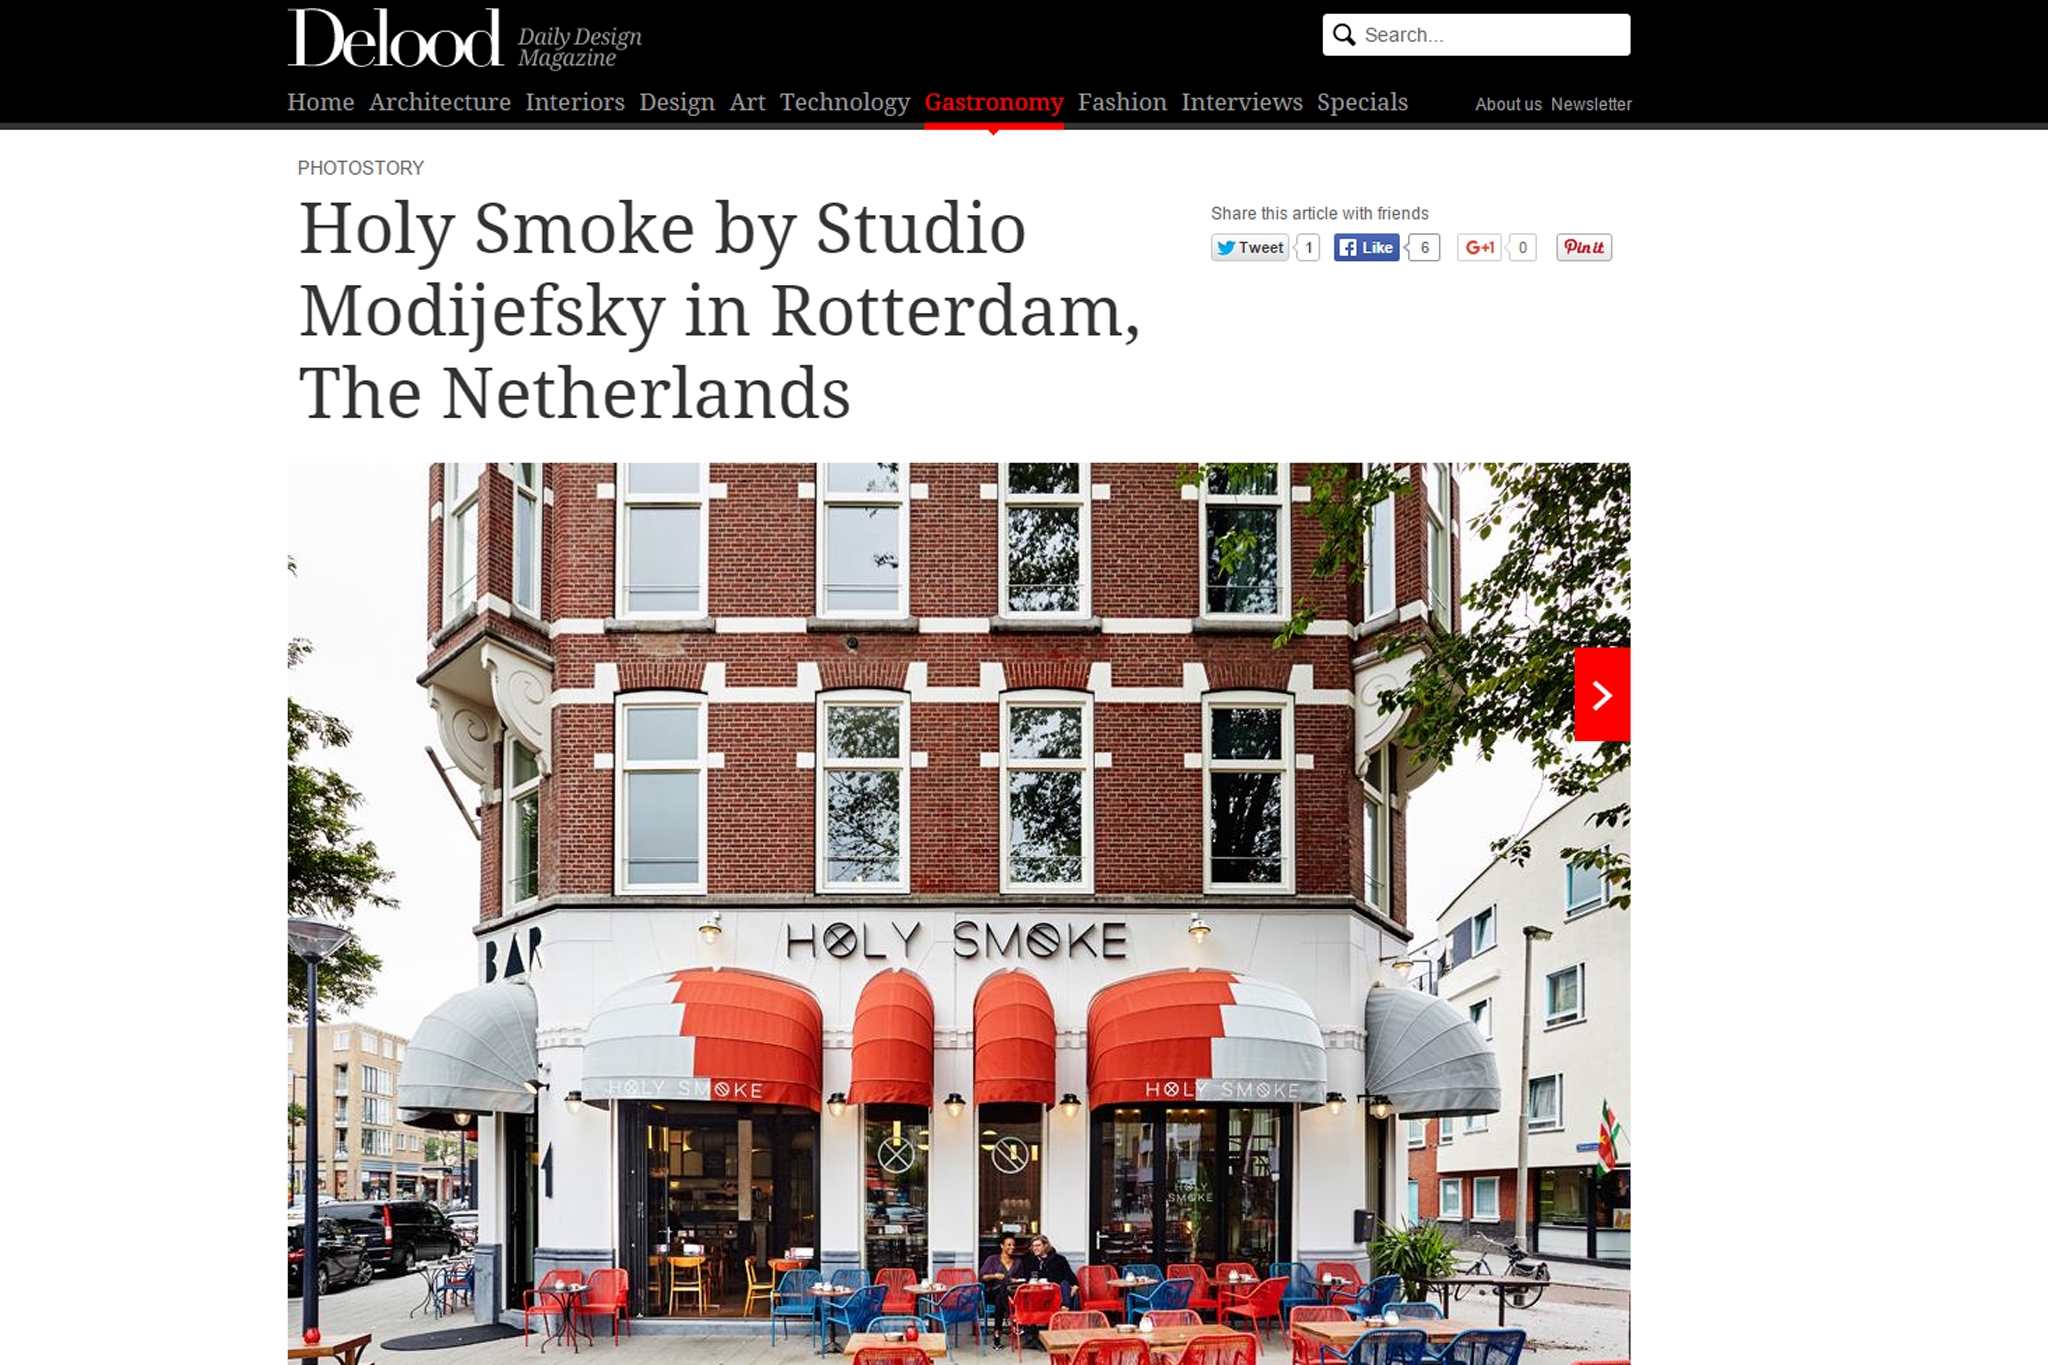 Holy Smoke by Studio Modijefsky on Delood